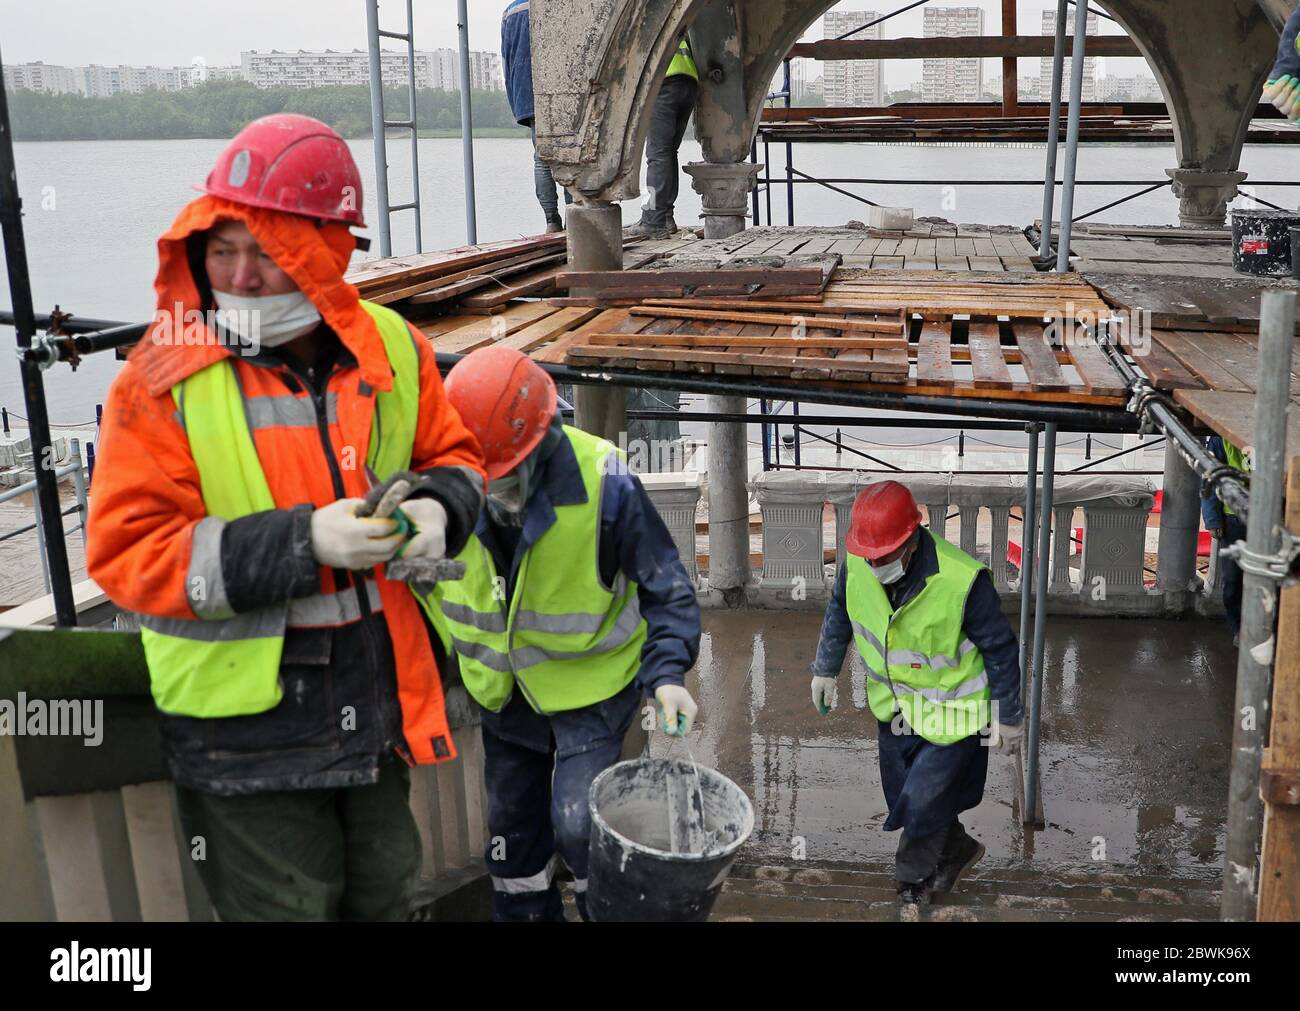 Moscow, Russia. 2nd June, 2020. Workers are seen at the reconstruction site of the North River Terminal. Credit: Gavriil Grigorov/TASS/Alamy Live News Stock Photo